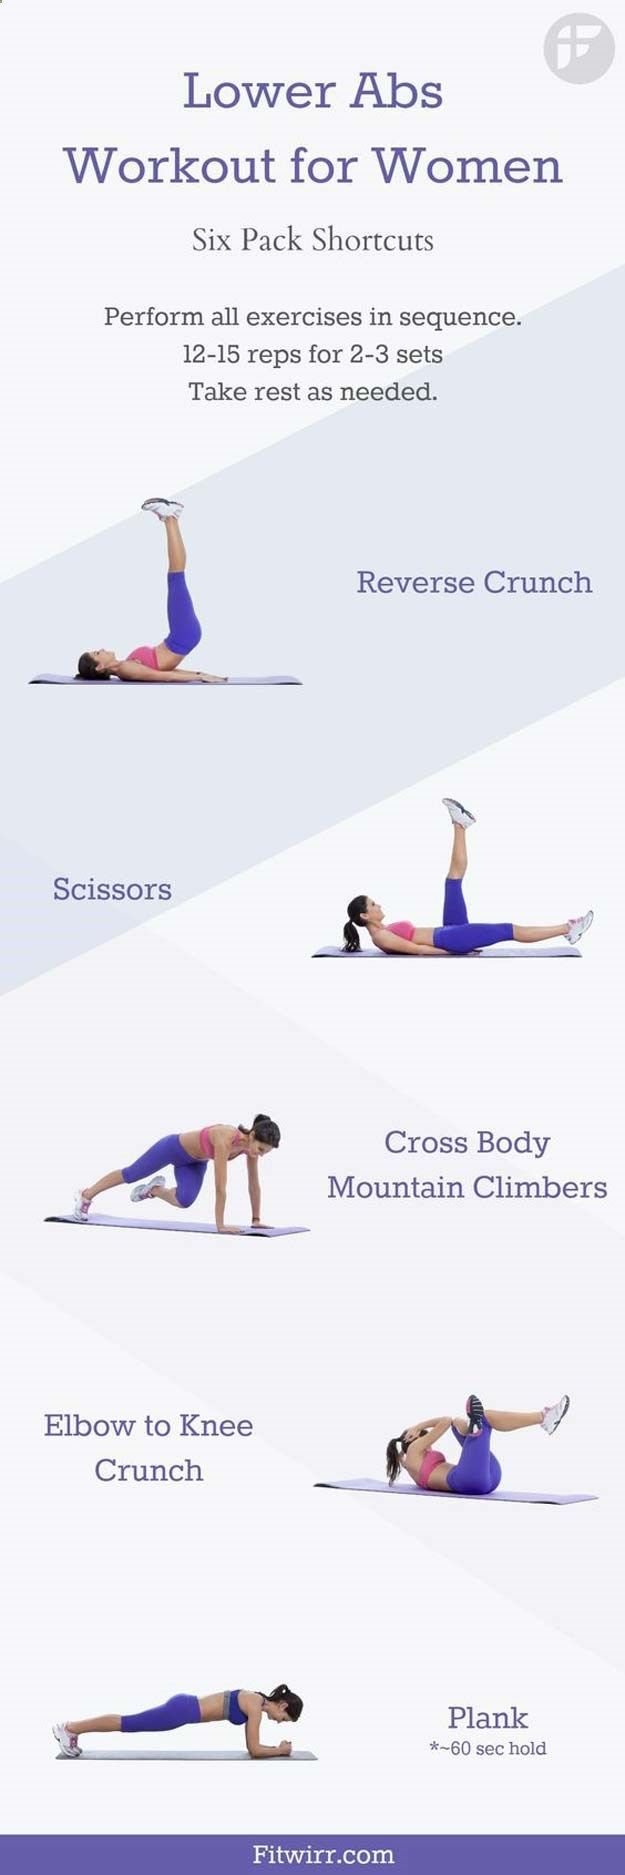 Best Exercises for Abs - Easy Exercises to Strengthen Tight the Core - Best Ab Exercises And Ab Workouts For A Flat Stomach, Increased Health Fitness, And Weightless. Ab Exercises For Women, For Men, And For Kids. Great With A Diet To Help With Losing Wei https://www.musclesaurus.com/flat-stomach-exercises/